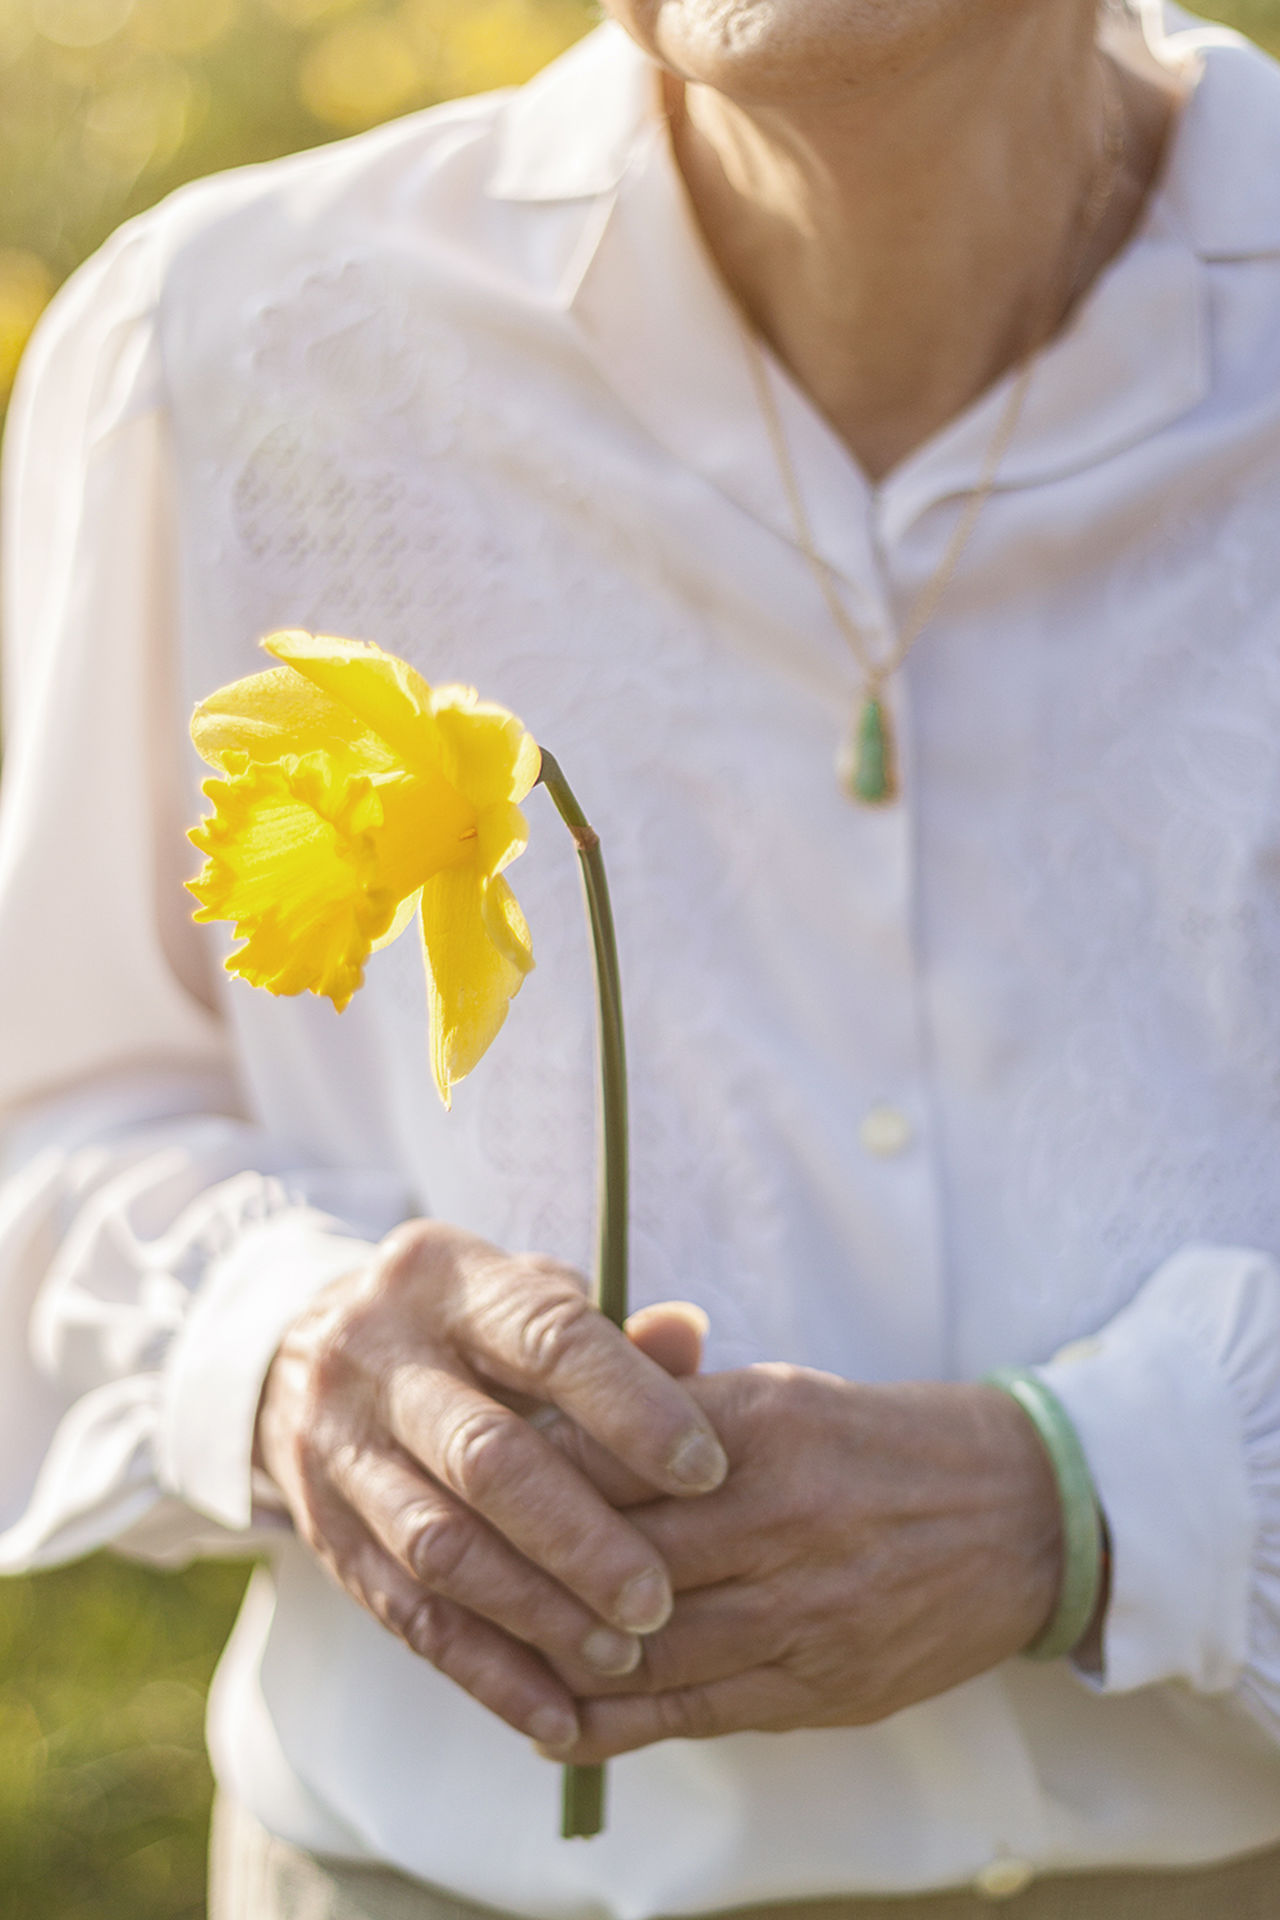 Close-up Daffodil Flower Grandma Granny's House Holding Human Body Part Human Hand Old Woman One Person Outdoors Womanity